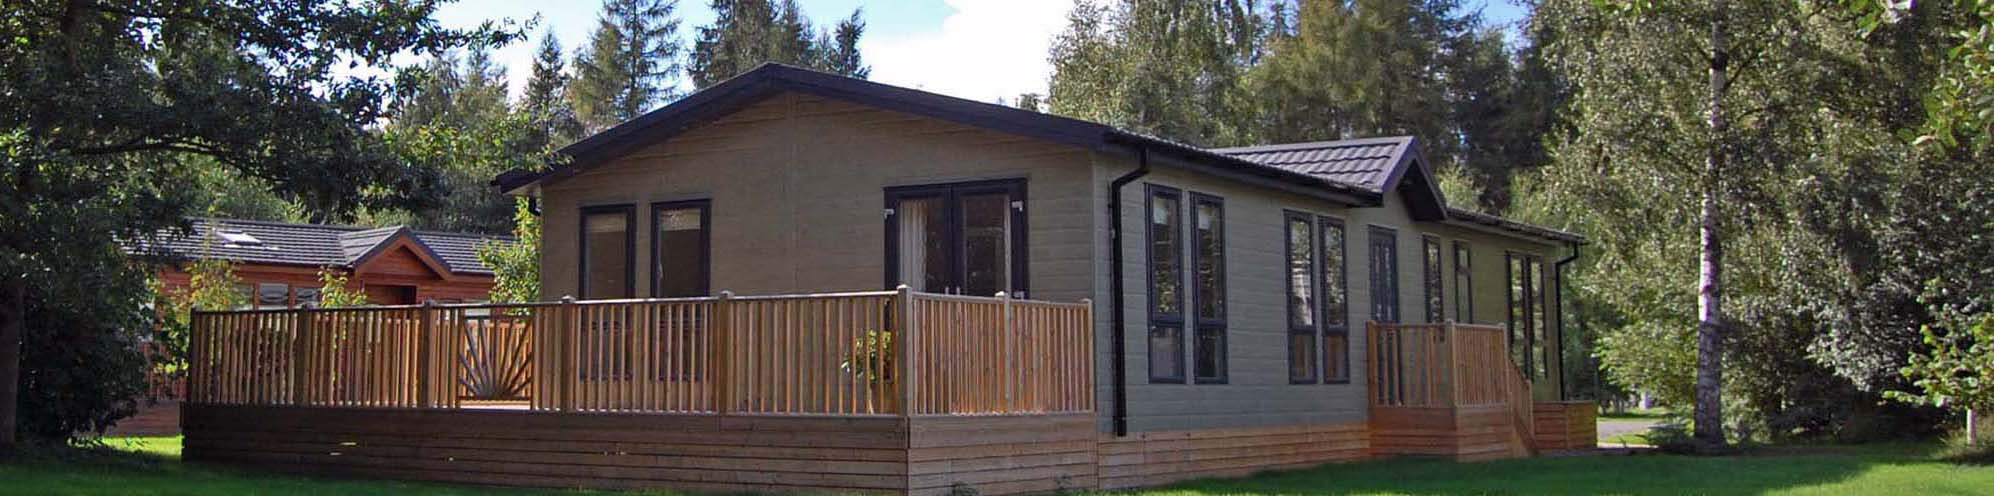 lodges for sale Yorkshrie